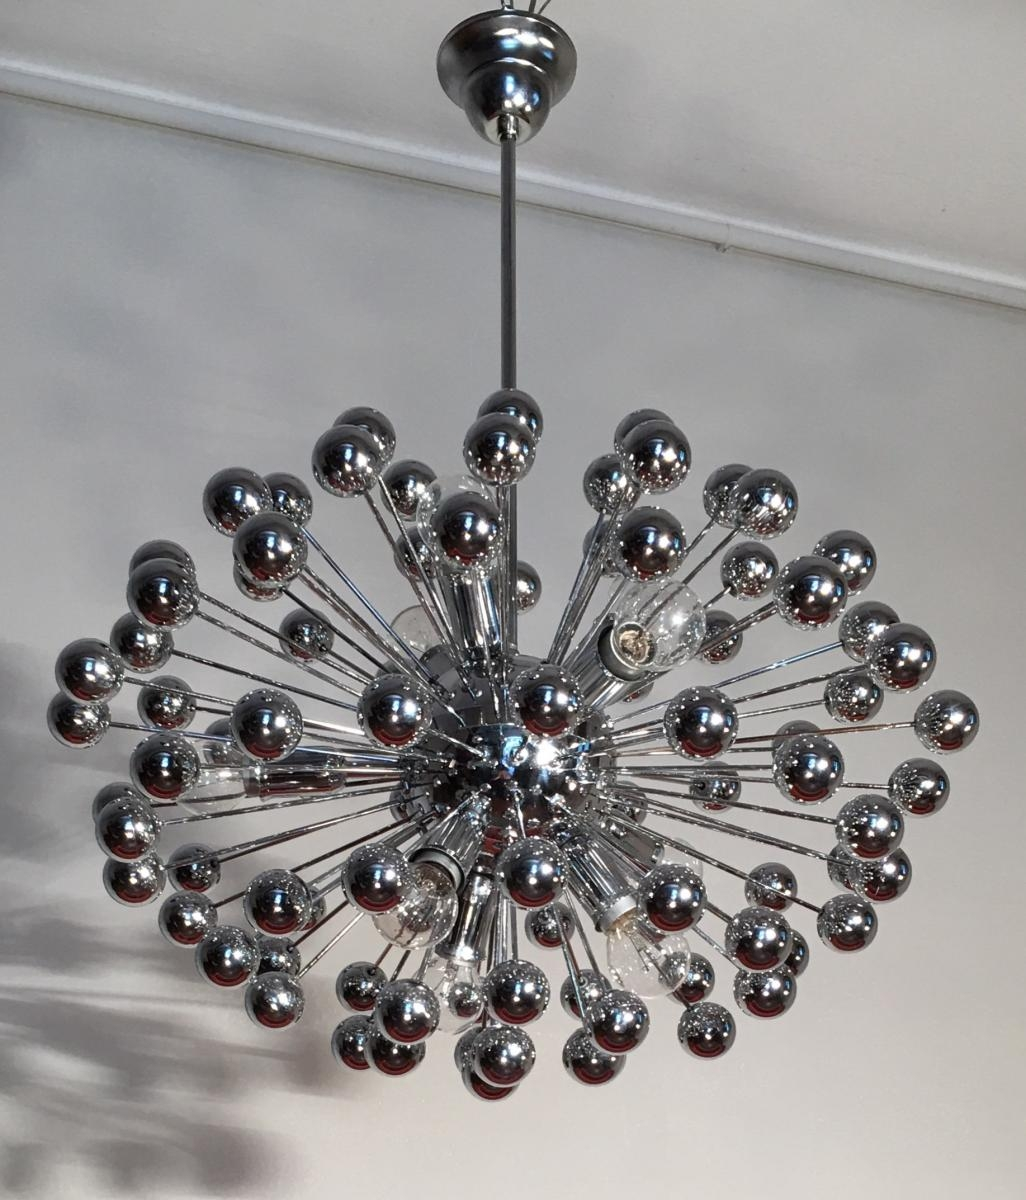 Mid Century Italian Chrome Multi Sphere Sputnik Chandelier 1960s Intended For Chrome Sputnik Chandeliers (Image 12 of 25)